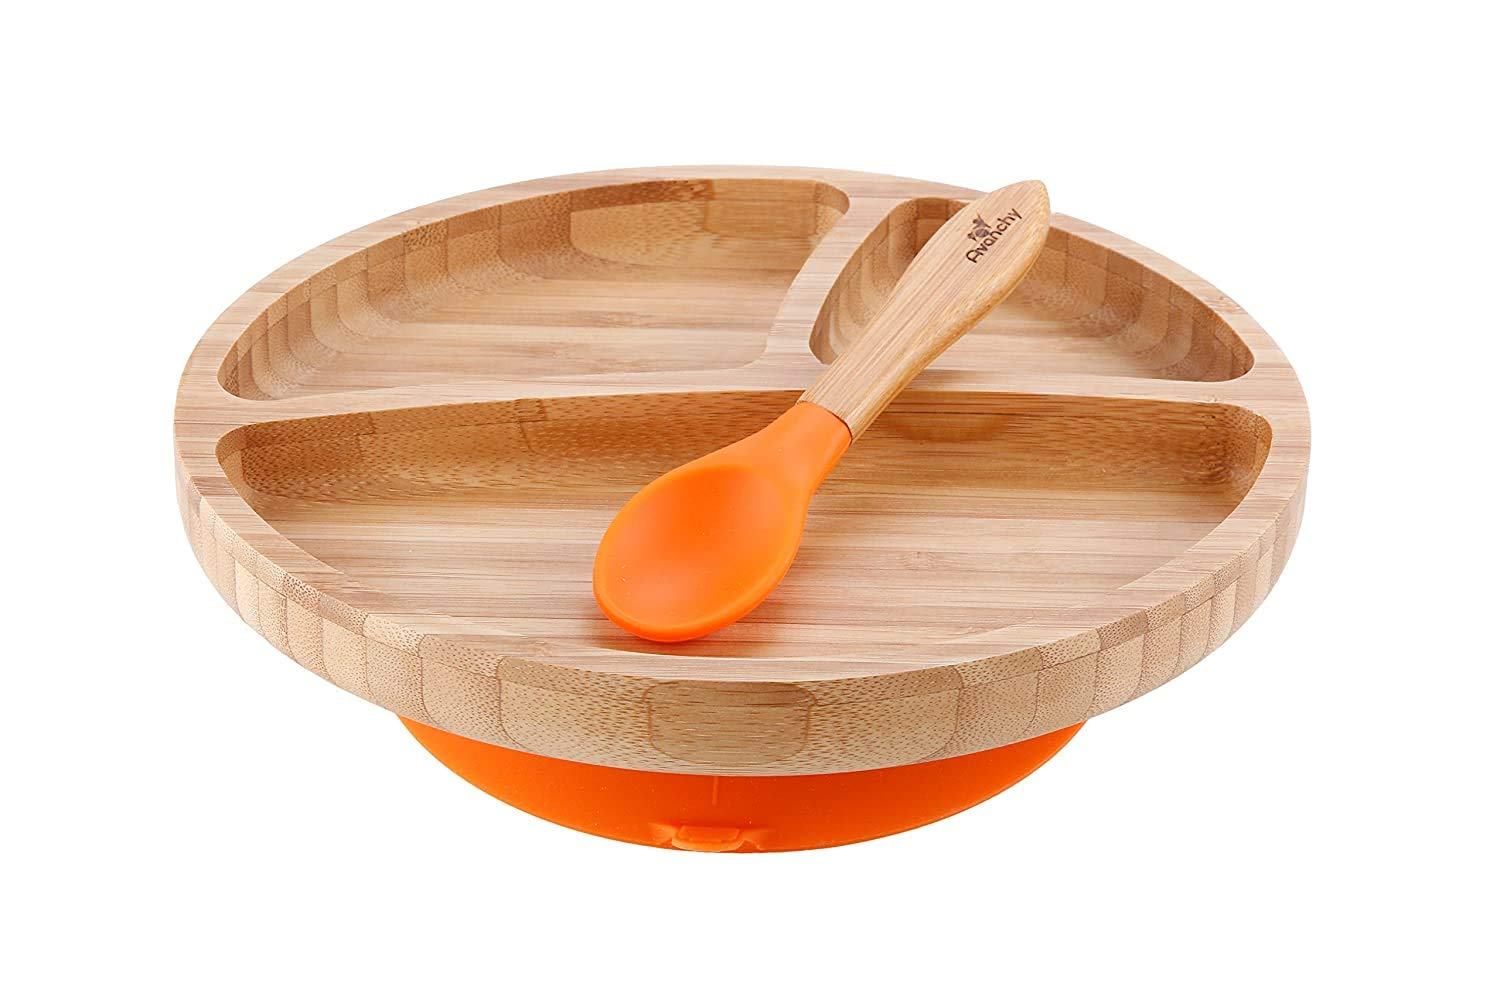 Avanchy Bamboo Suction Toddler Divider Plate & Spoon - 9 Months and Older - Silicon Suction - Stay Put Plate - 8.5